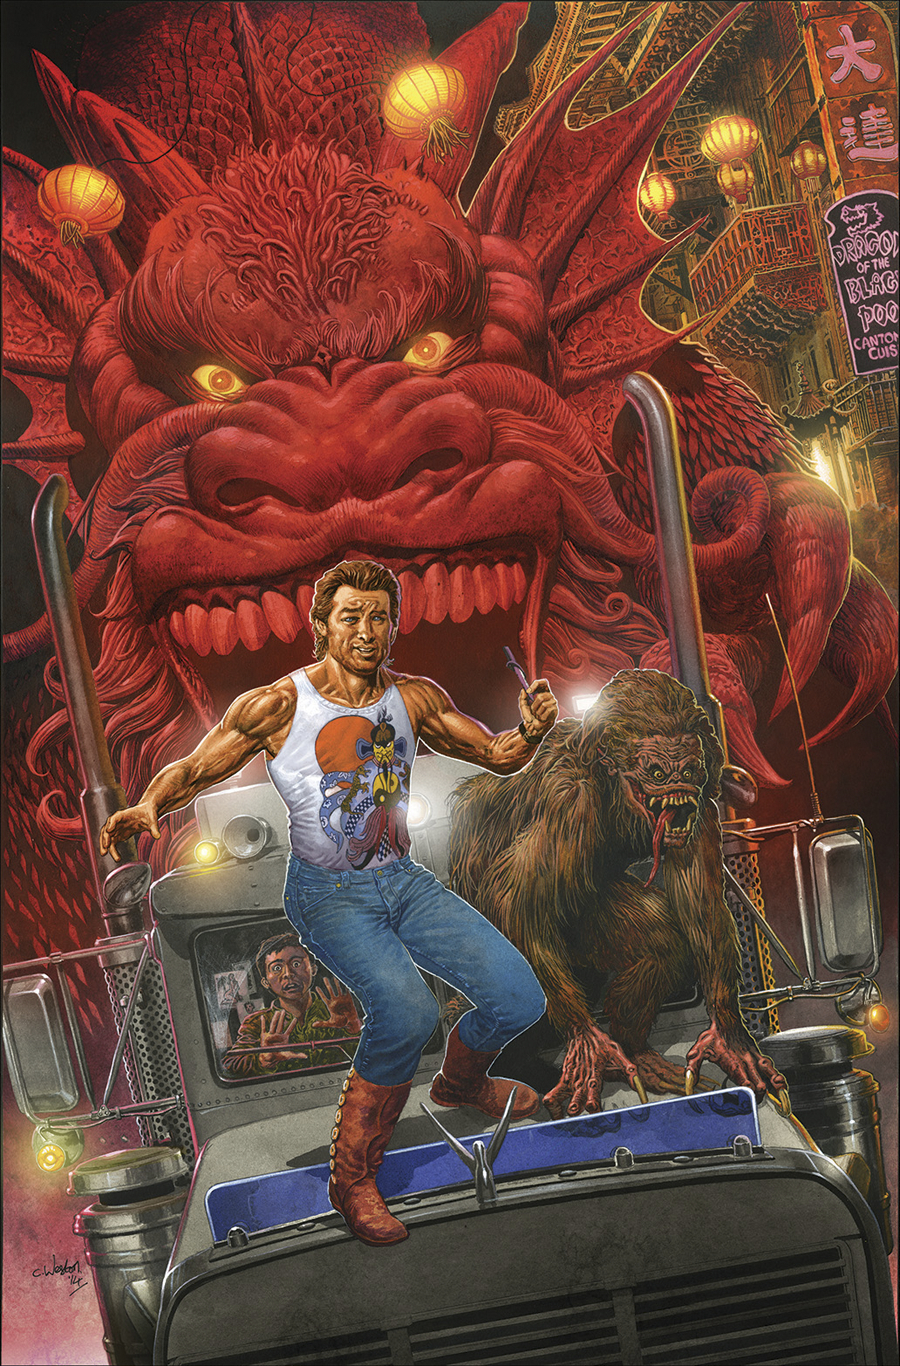 BIG TROUBLE IN LITTLE CHINA #1 25 COPY INCV WESTON VAR